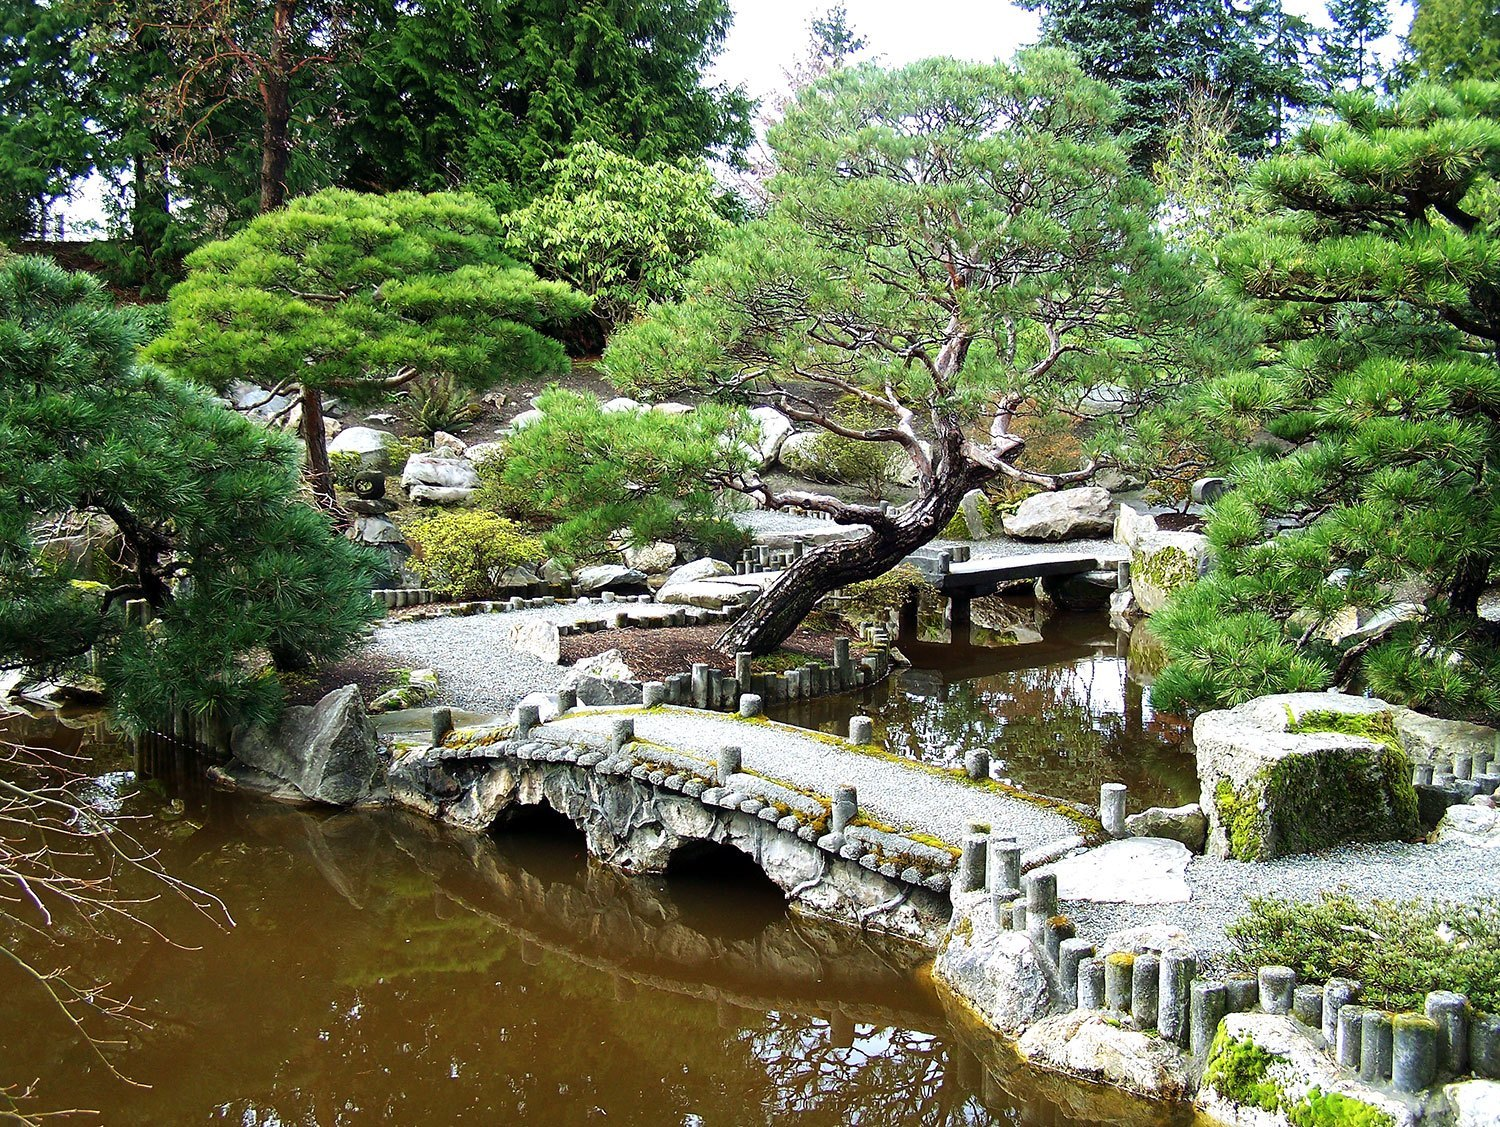 japanesegarden04 - Japanese Garden